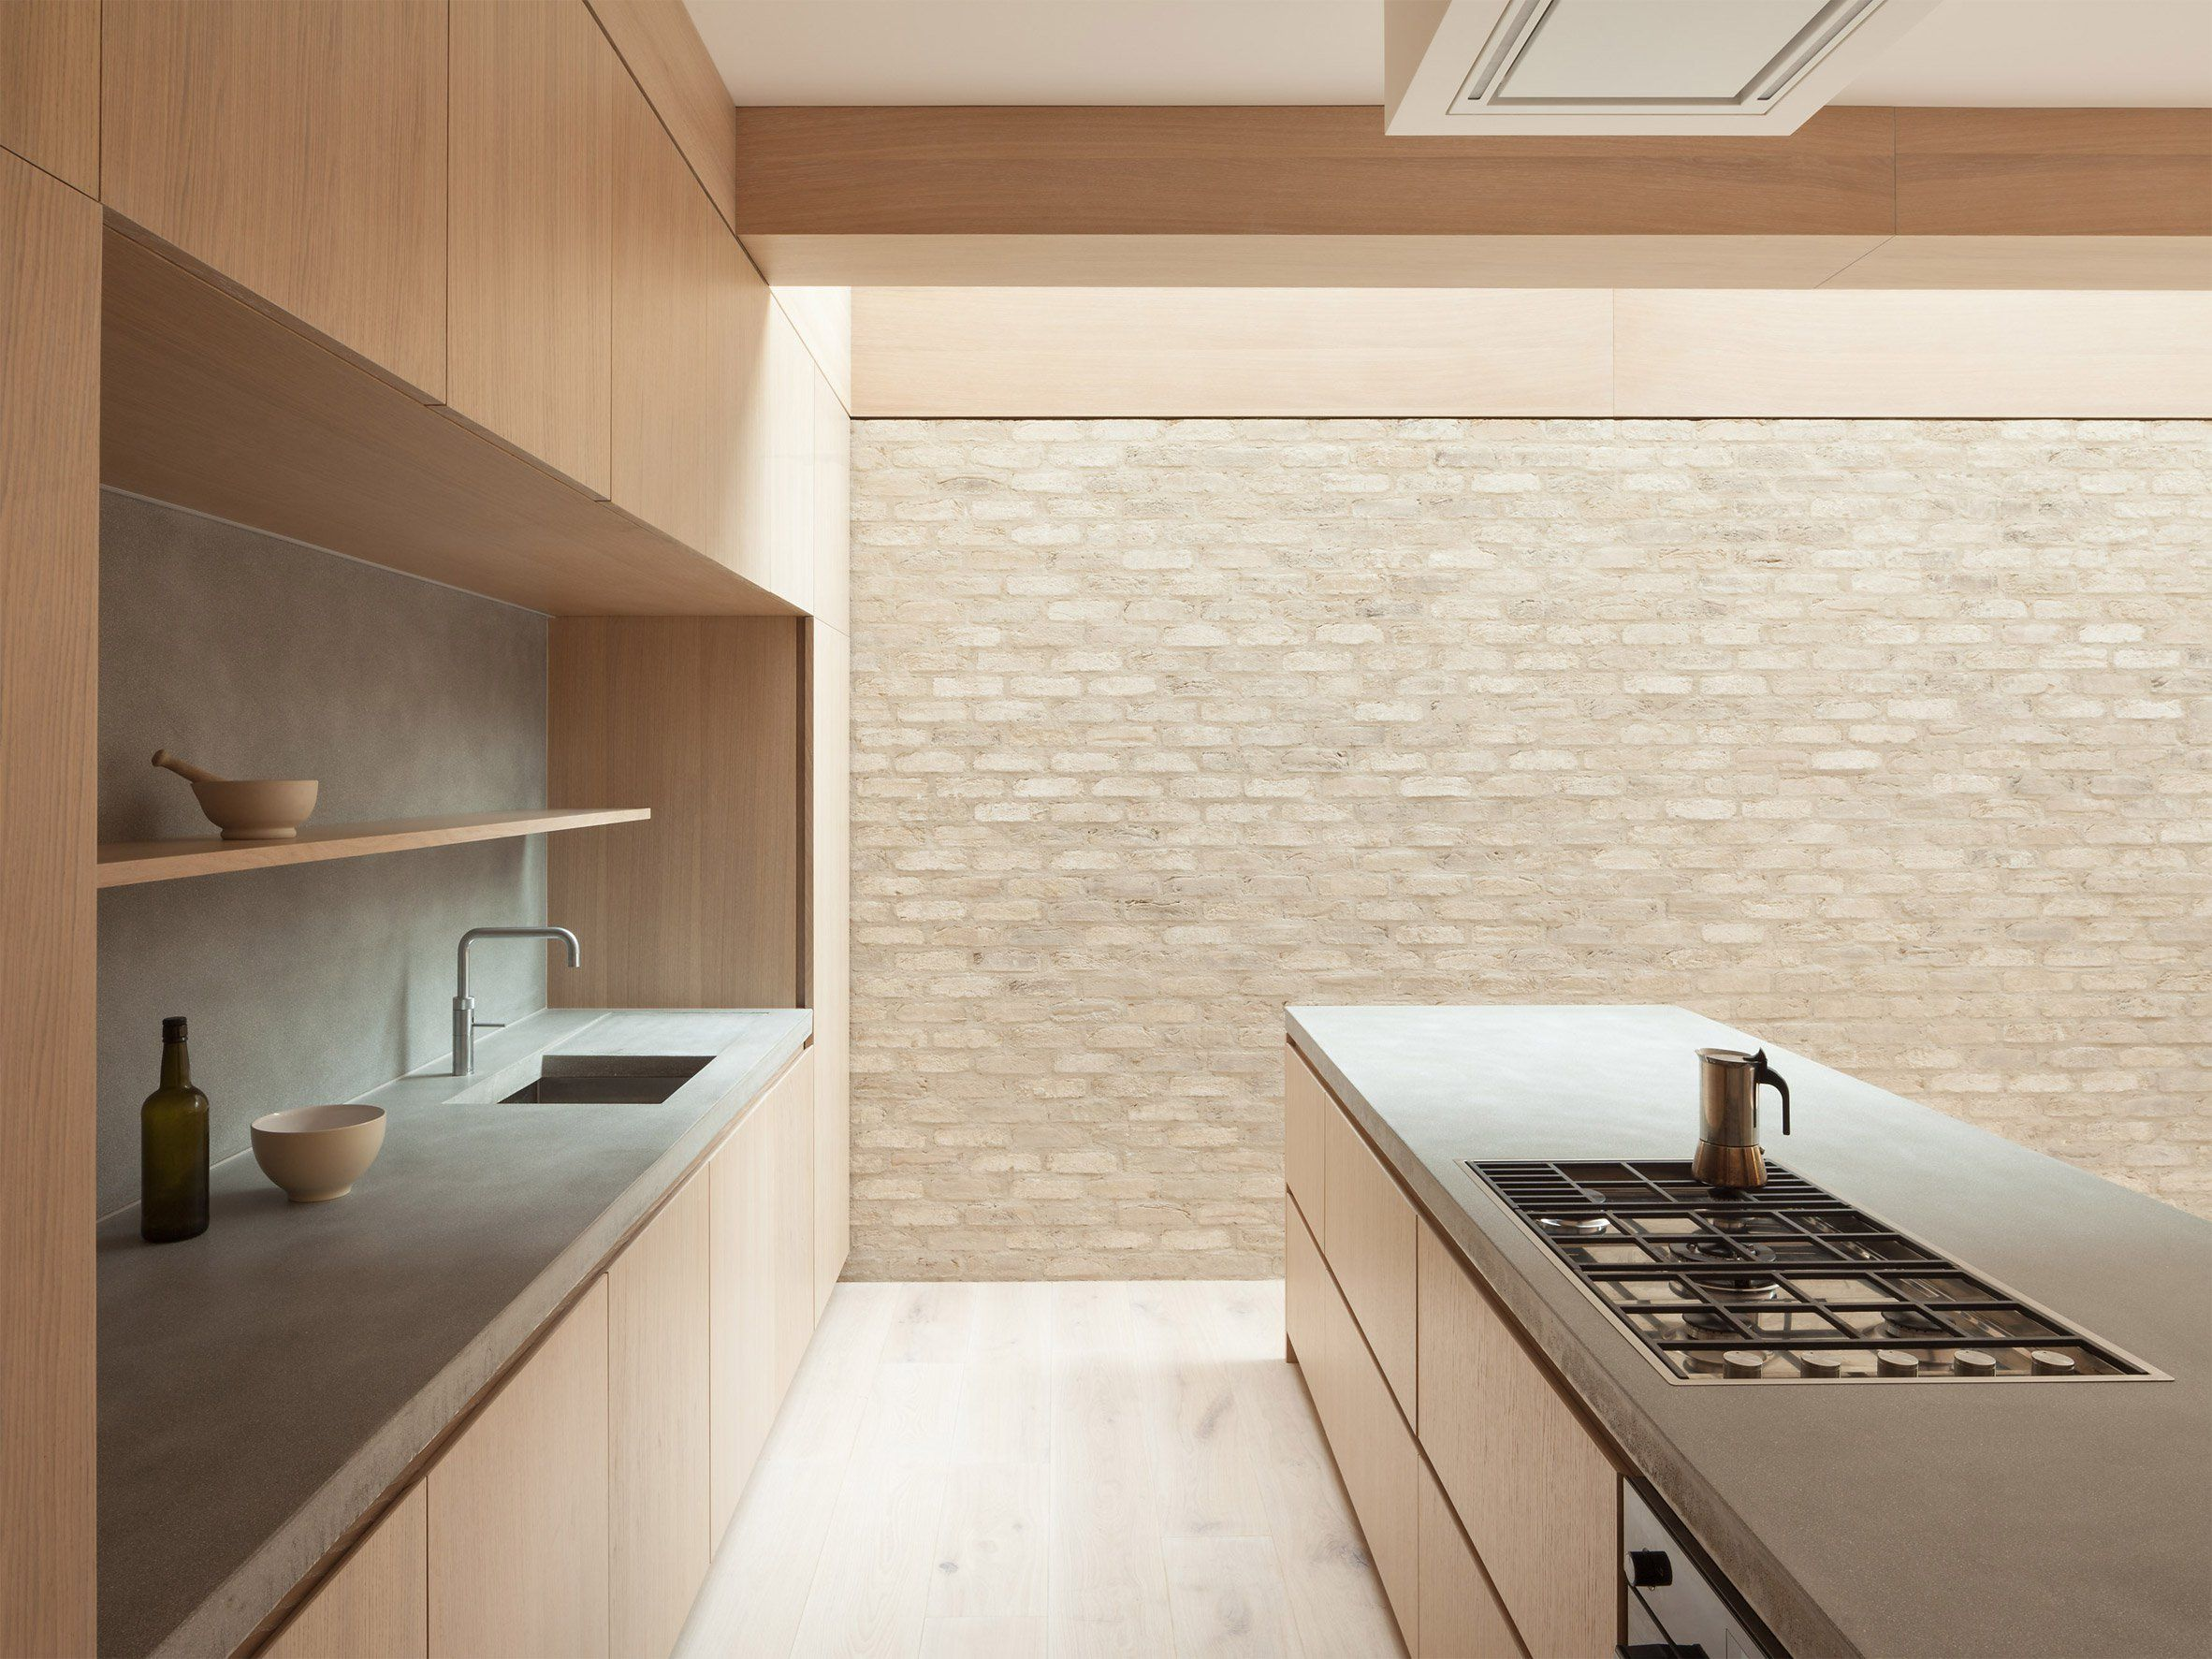 Harvey Road Crouch End London / Erbar Mattes | COCINA - KITCHEN ...